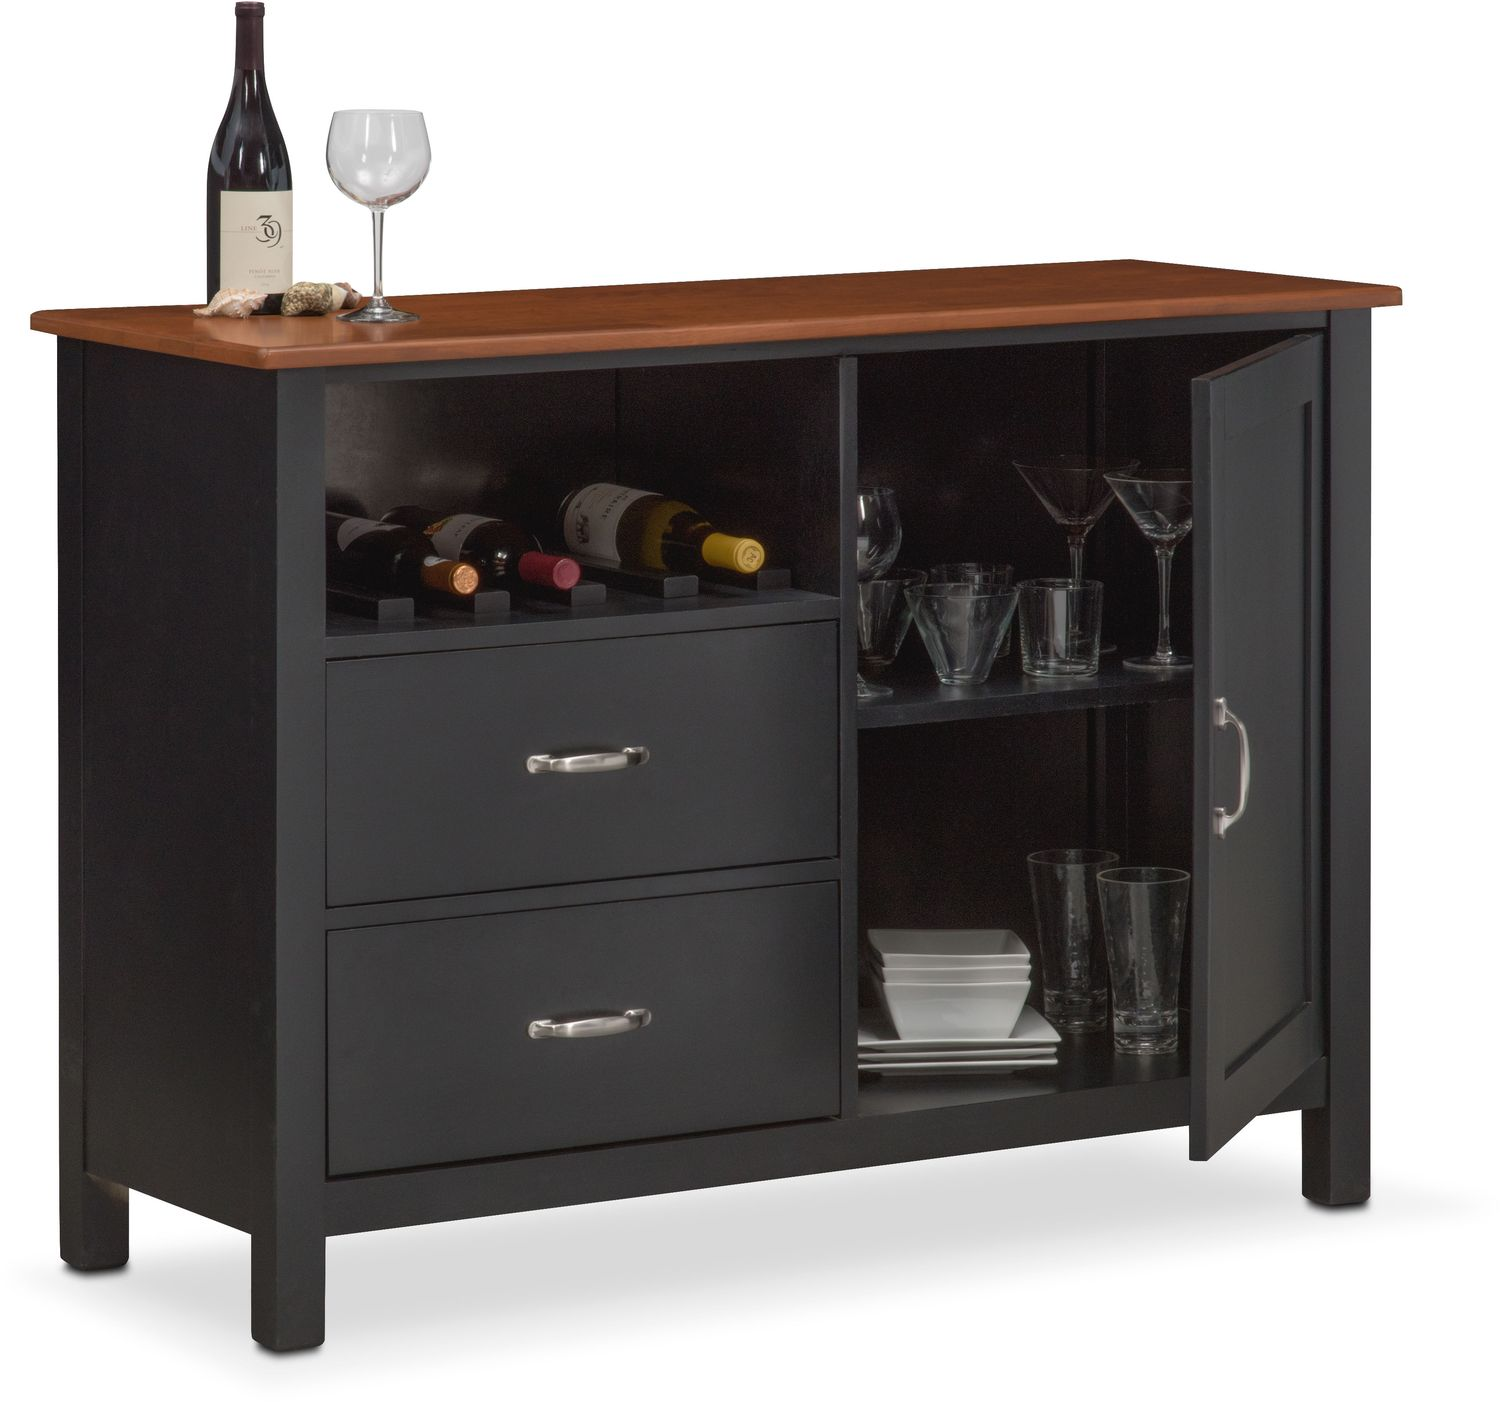 Nantucket Sideboard - Black and Cherry - Buffet & Sideboard Cabinets Value City Furniture